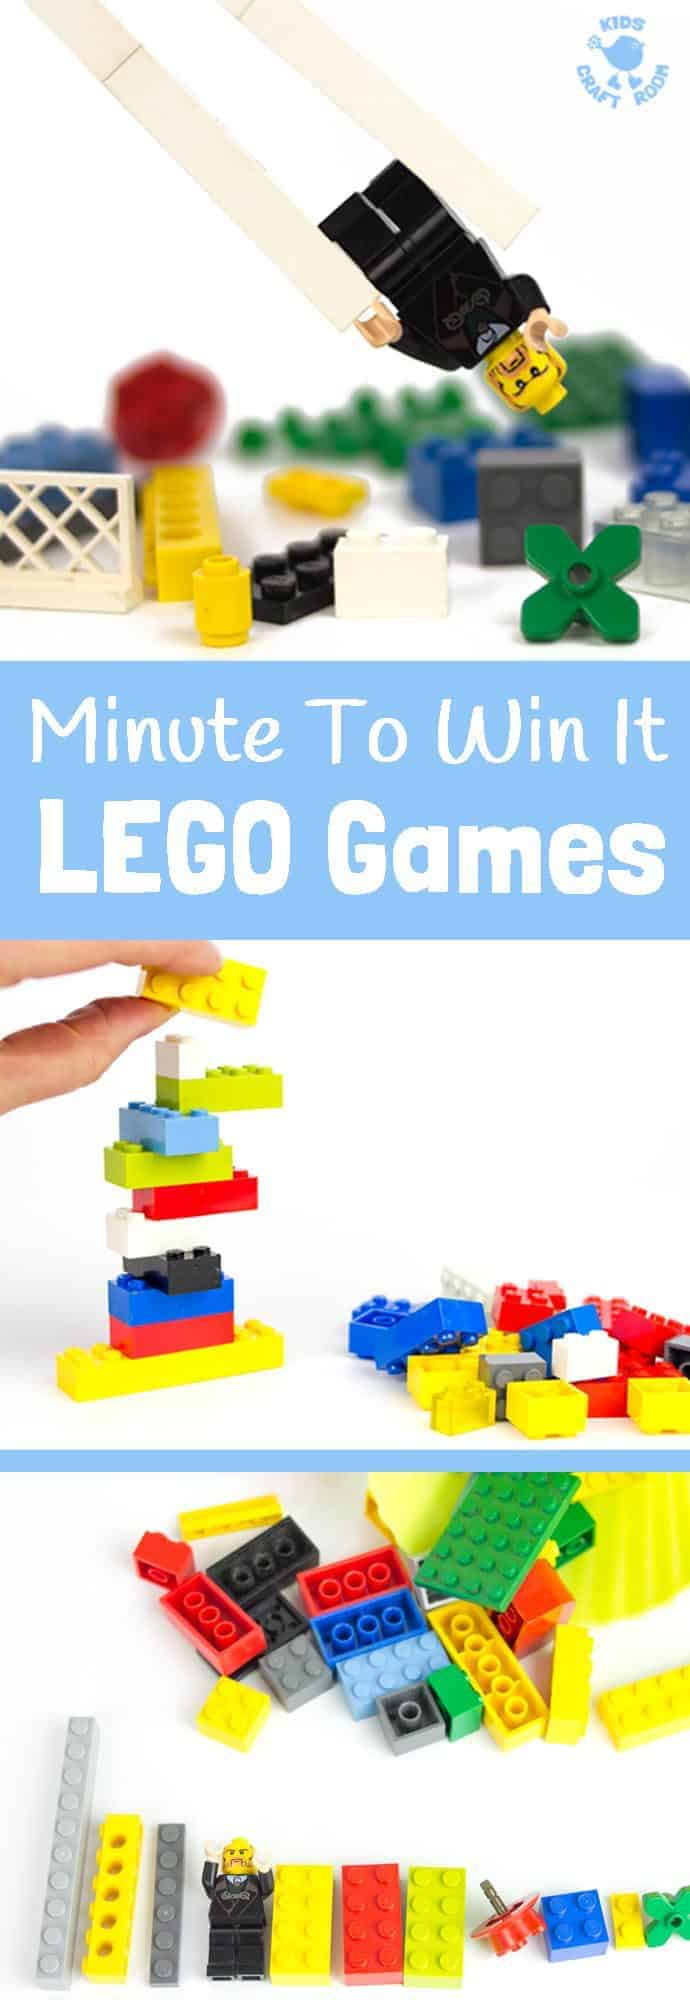 exciting minute to win it games with lego are fun for all ages making them